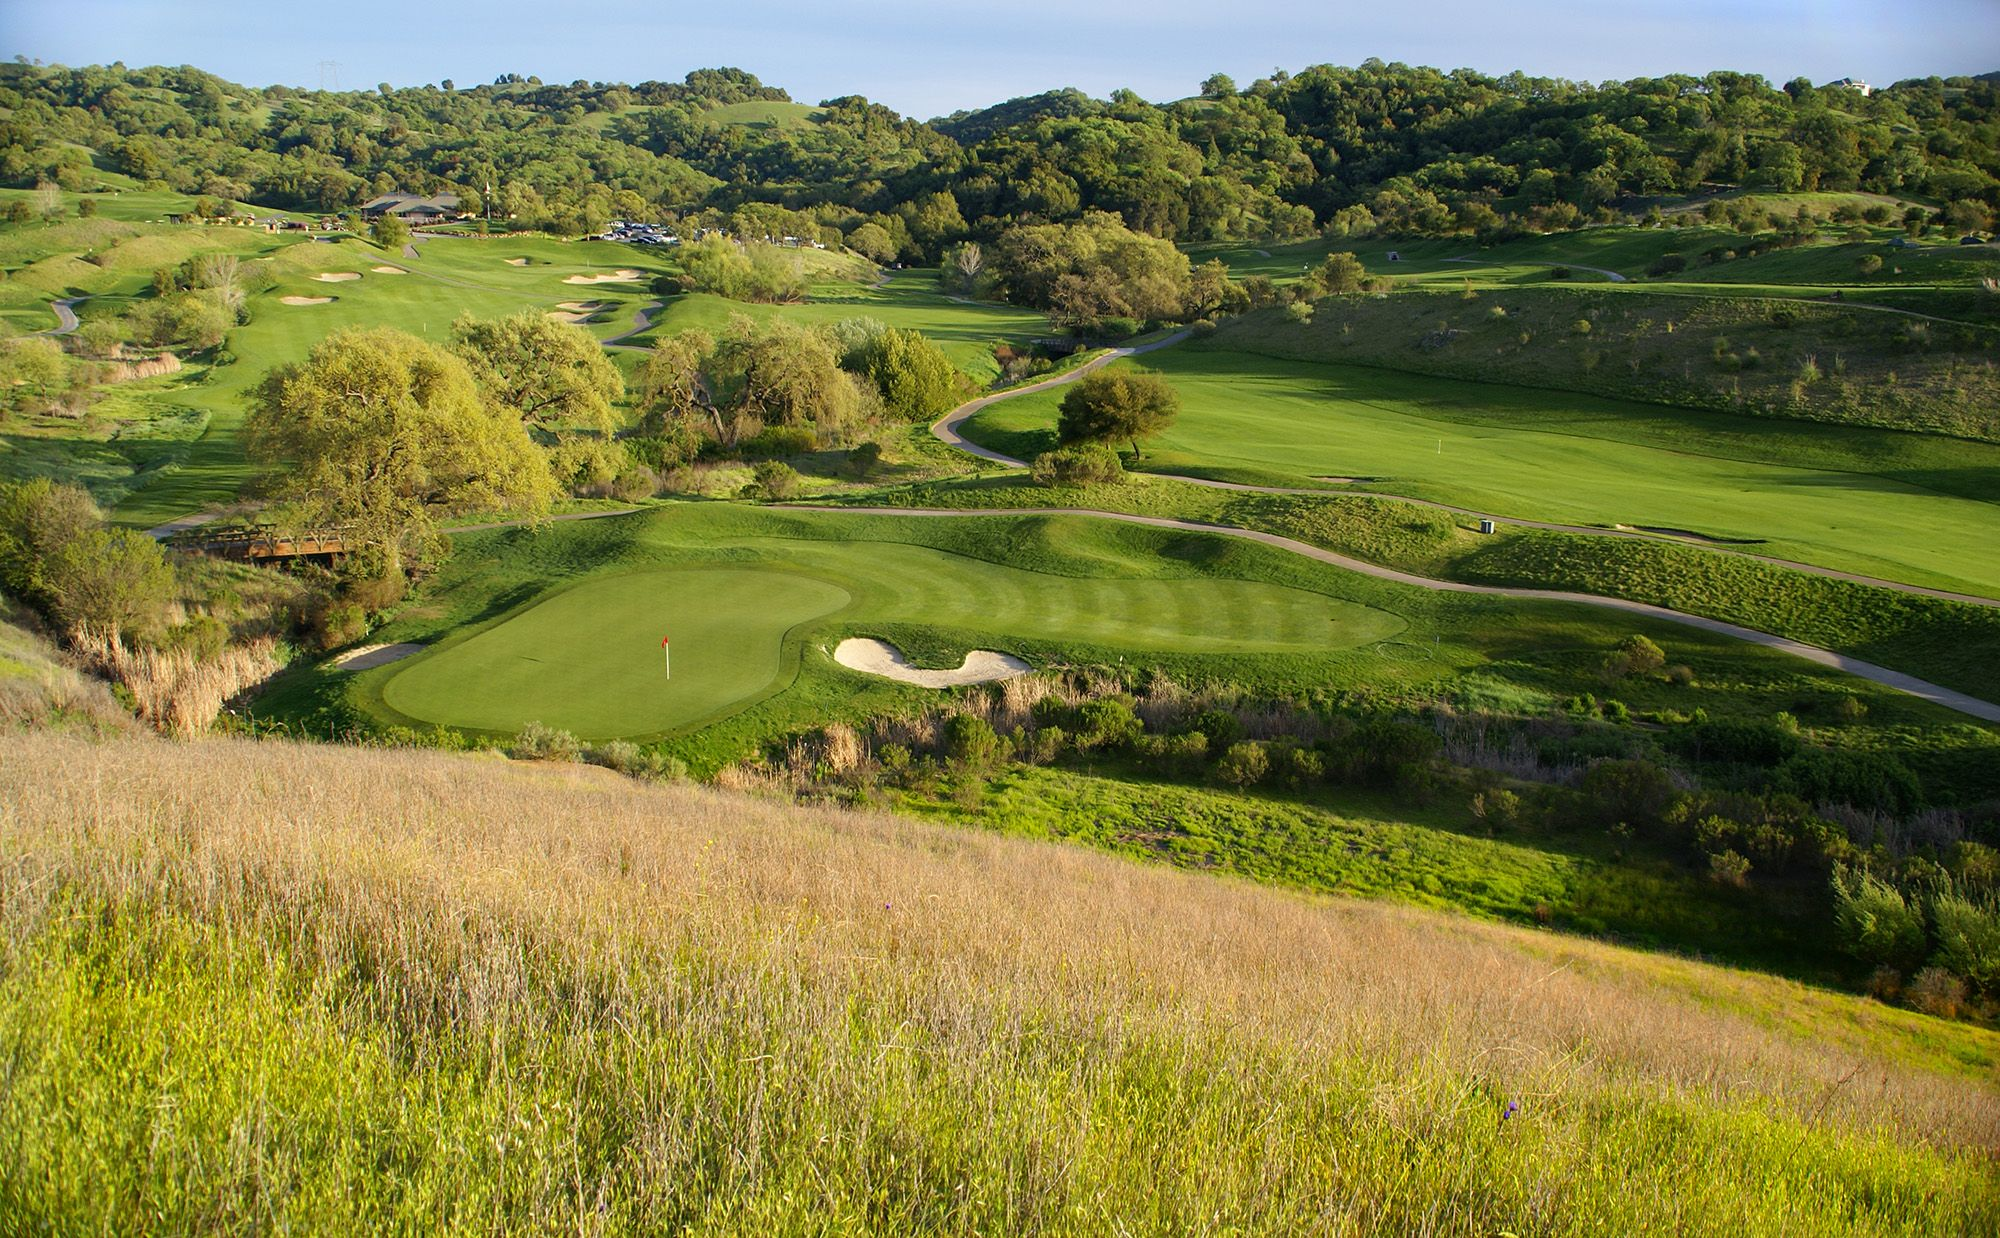 The Course At Cinnabar Hills In San Jose Ca Is Our Golfcourseoftheday They Have 27 Holes That Can Be Played In 6 Differen Discount Golf Golf Courses Golf